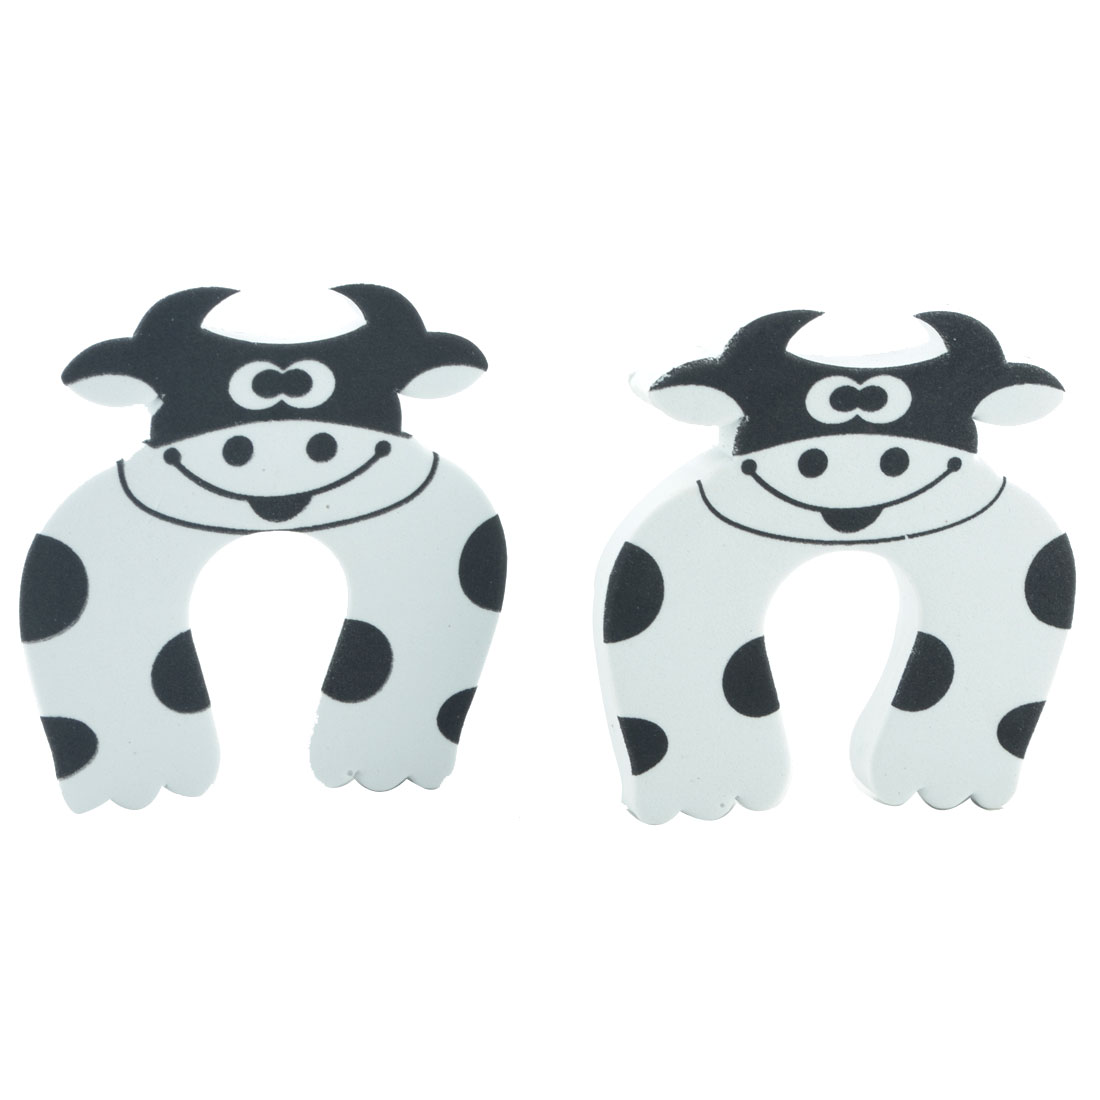 Home EVA White Cow Finger Protector Safety Guard Doorstop Door Stopper Lock 2pcs